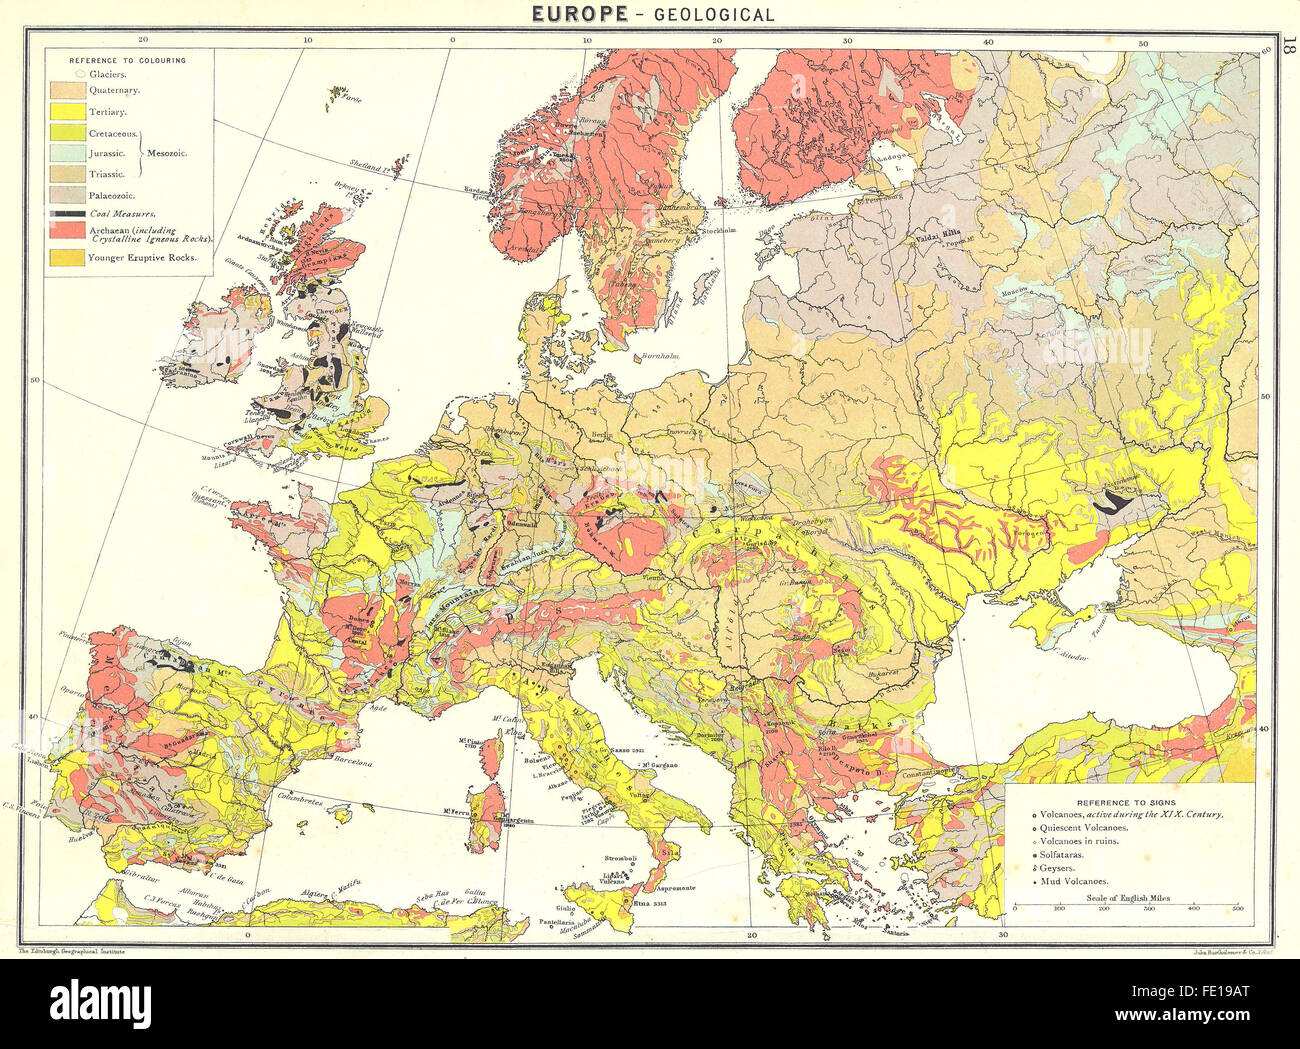 Europe Geological 1900 Antique Map Stock Photo 94686336 Alamy